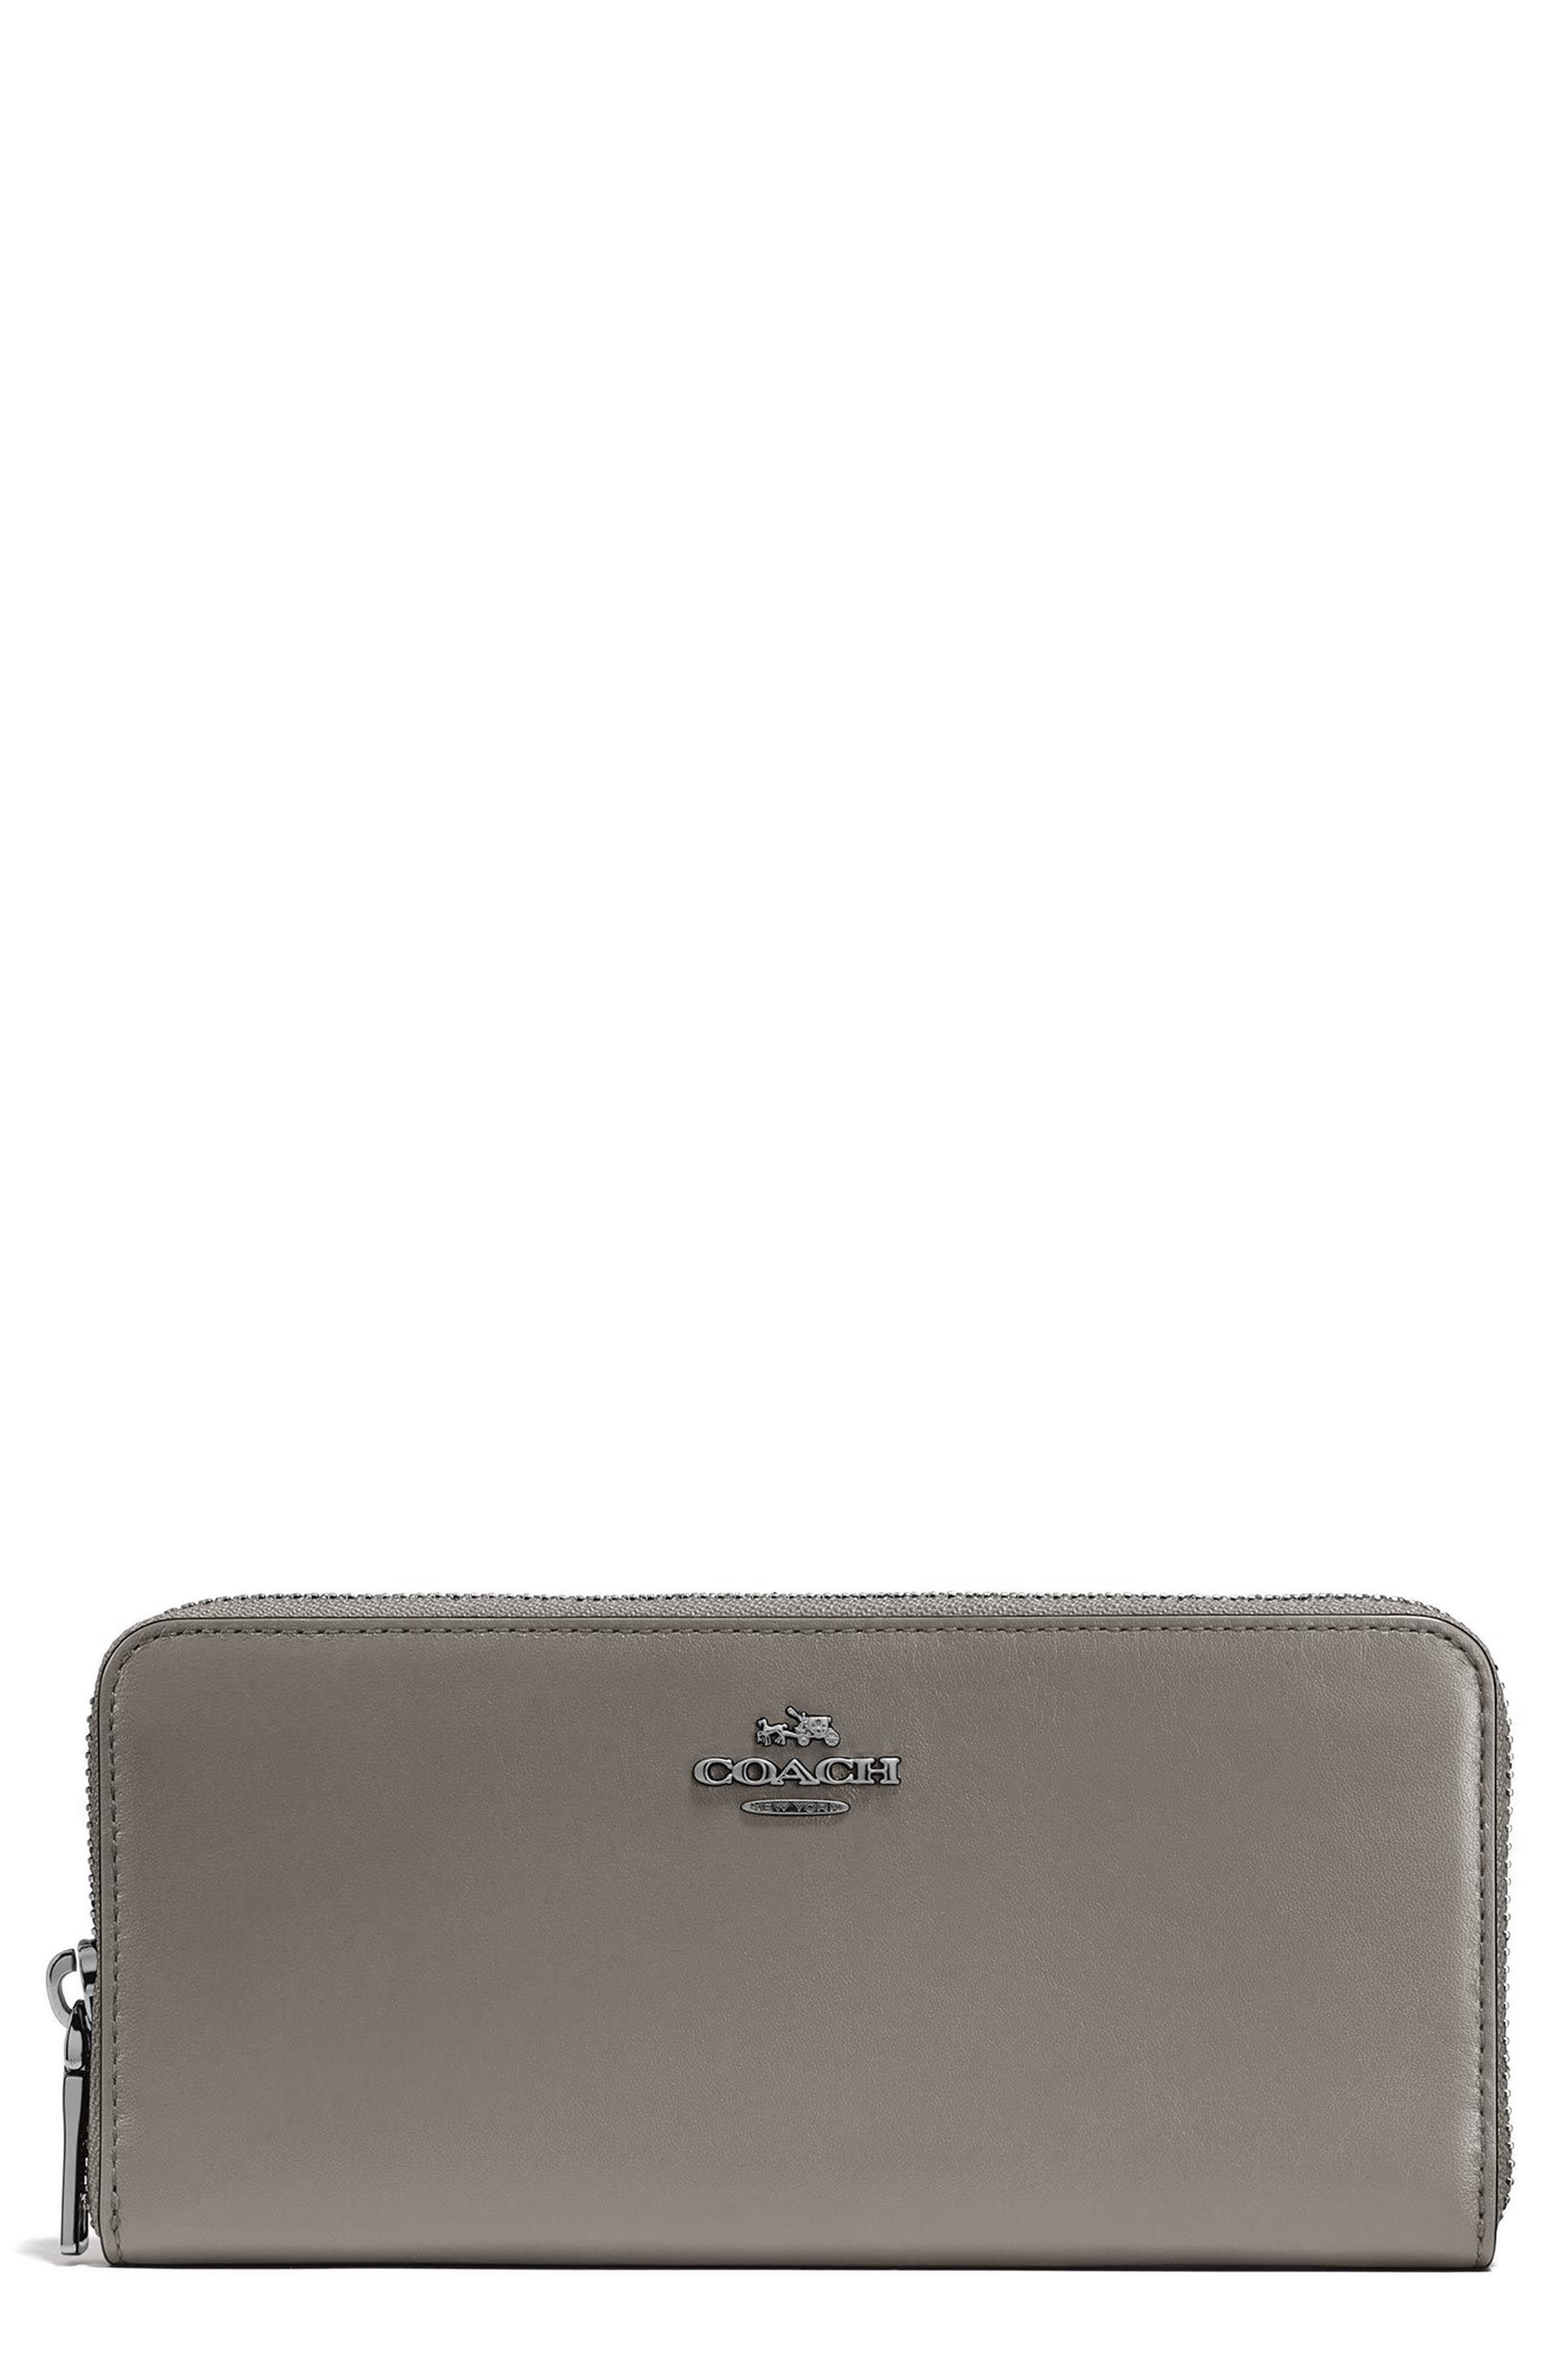 Alternate Image 1 Selected - COACH Accordion Zip Around Leather Wallet